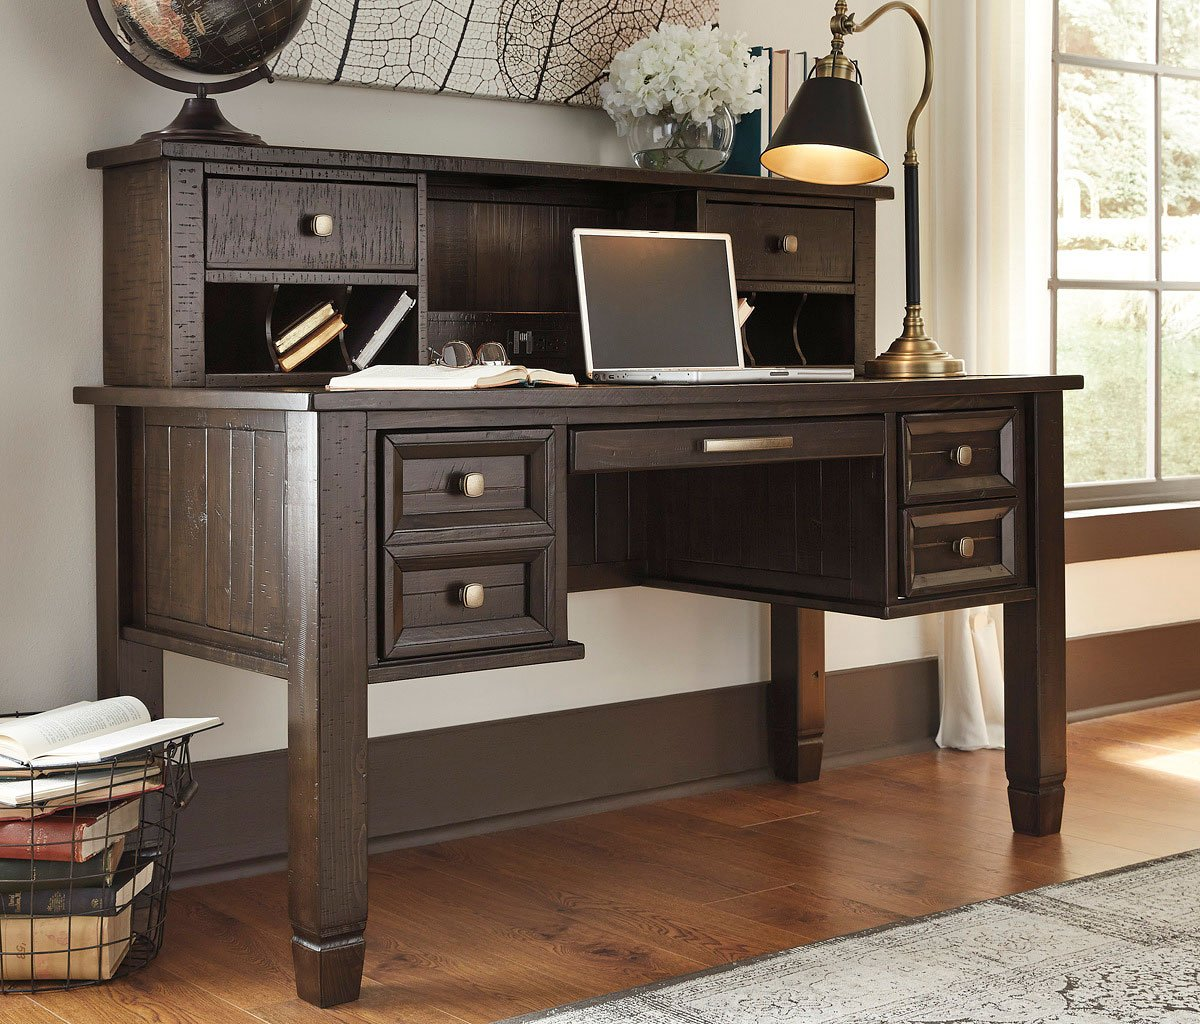 Furniture For A Best Home Office: Townser Home Office Set Signature Design